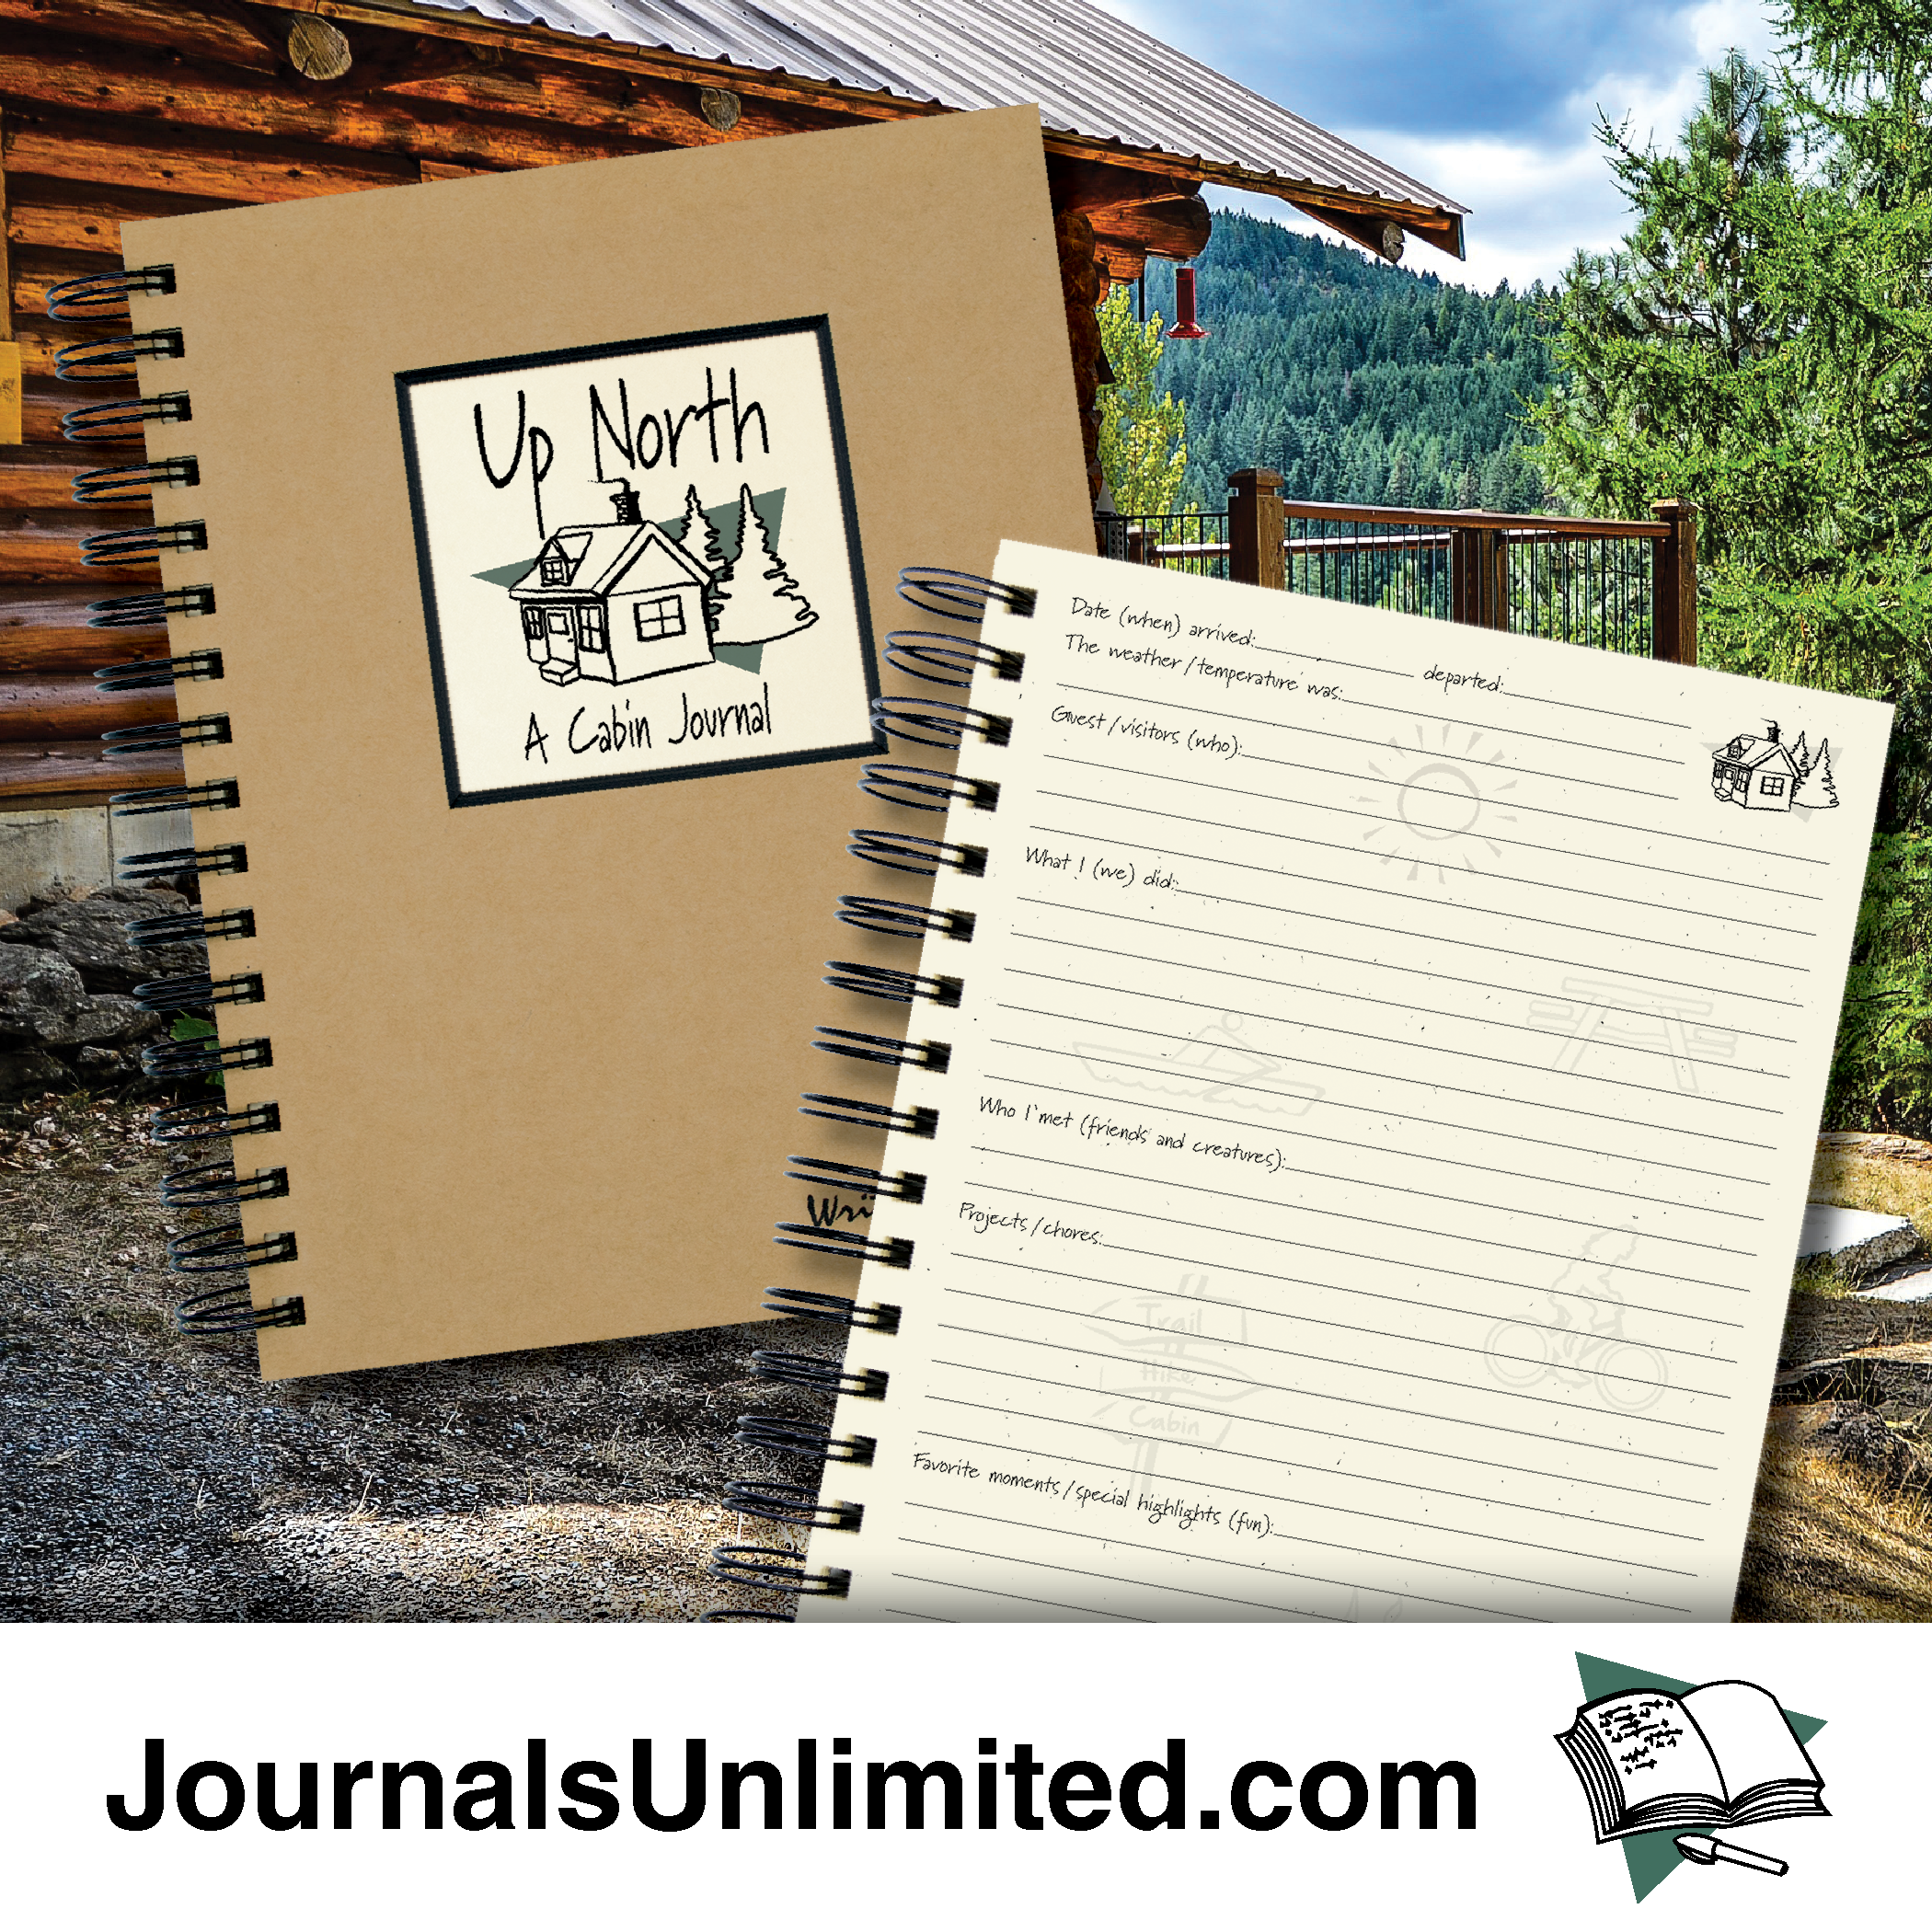 Up North A Cabin Journal Journals Unlimited Inc